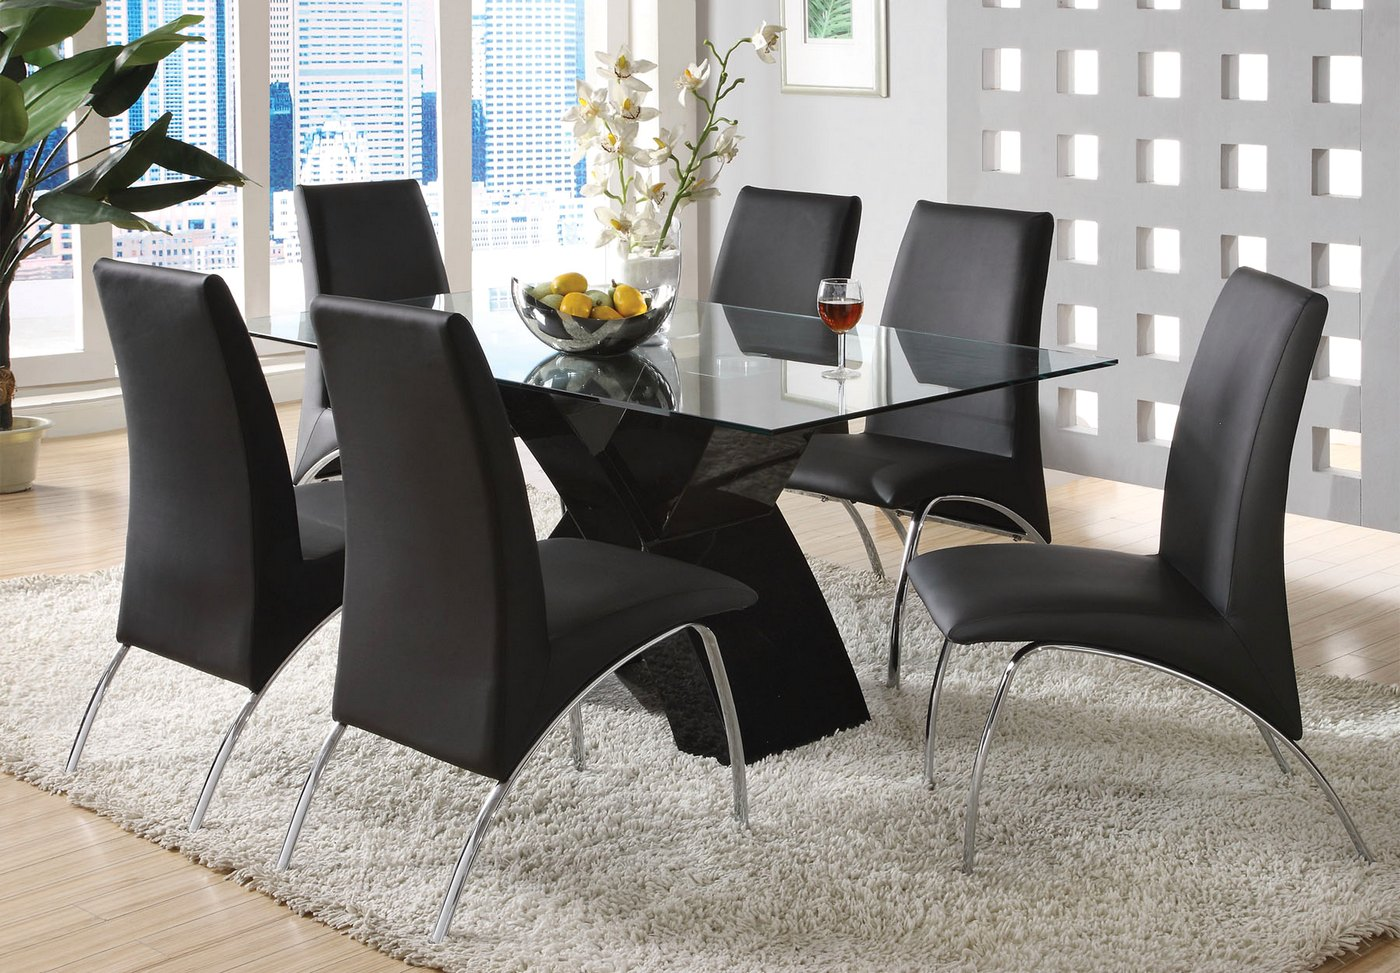 Wailoa Contemporary Black Casual Dining Set With X Shape Table Base CM8370BK